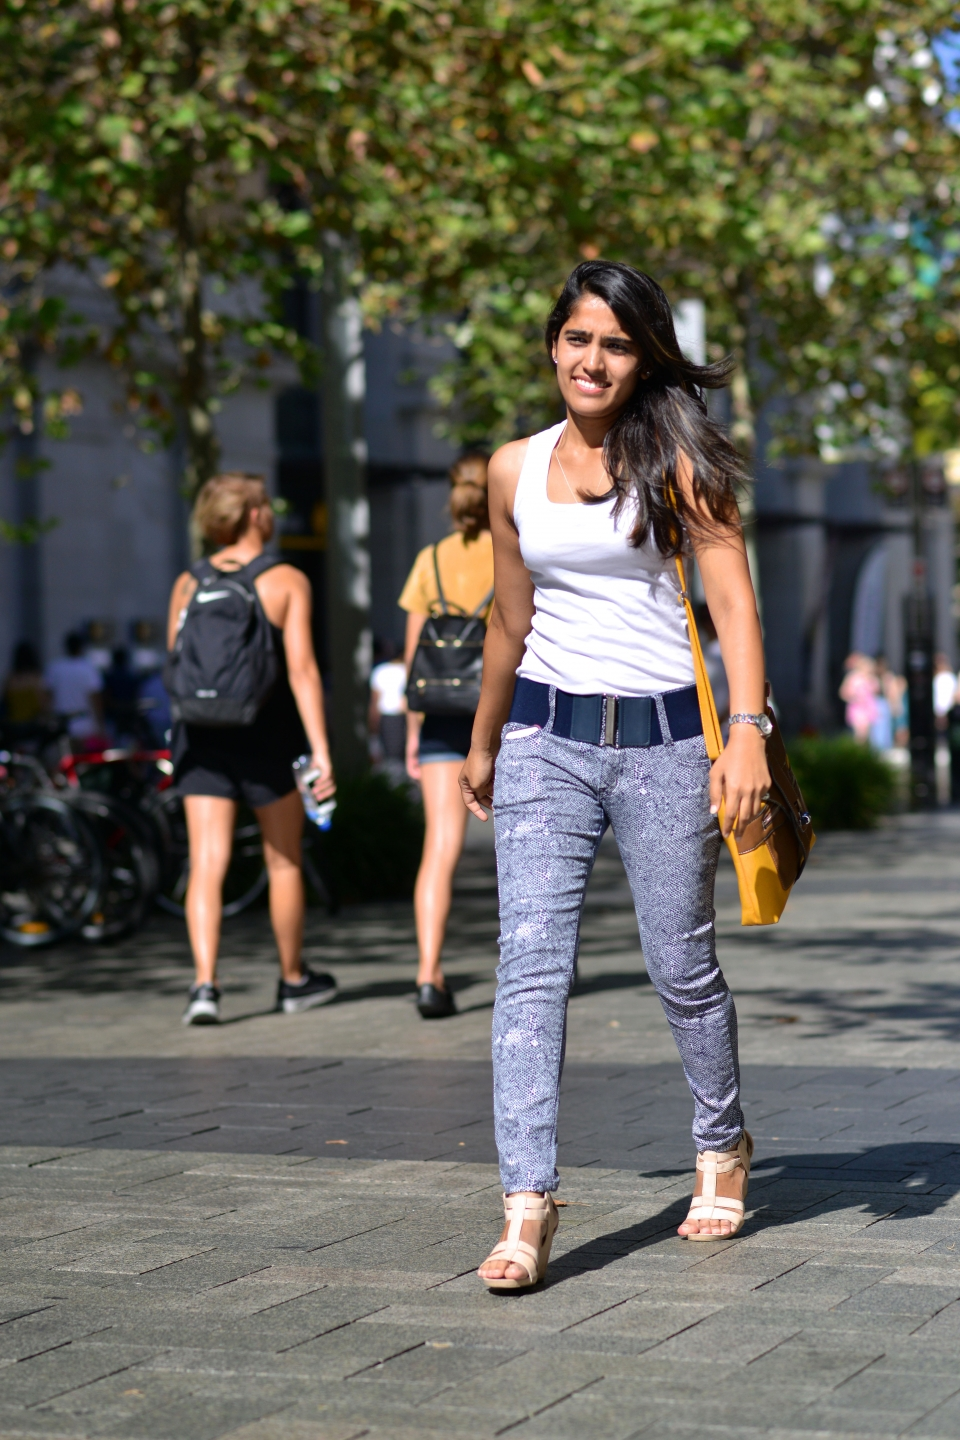 "WA: Vinha Arne, student, Perth CBD. ""I like casual, elegant and eye-catching wear"". Photo: Alan Wu"